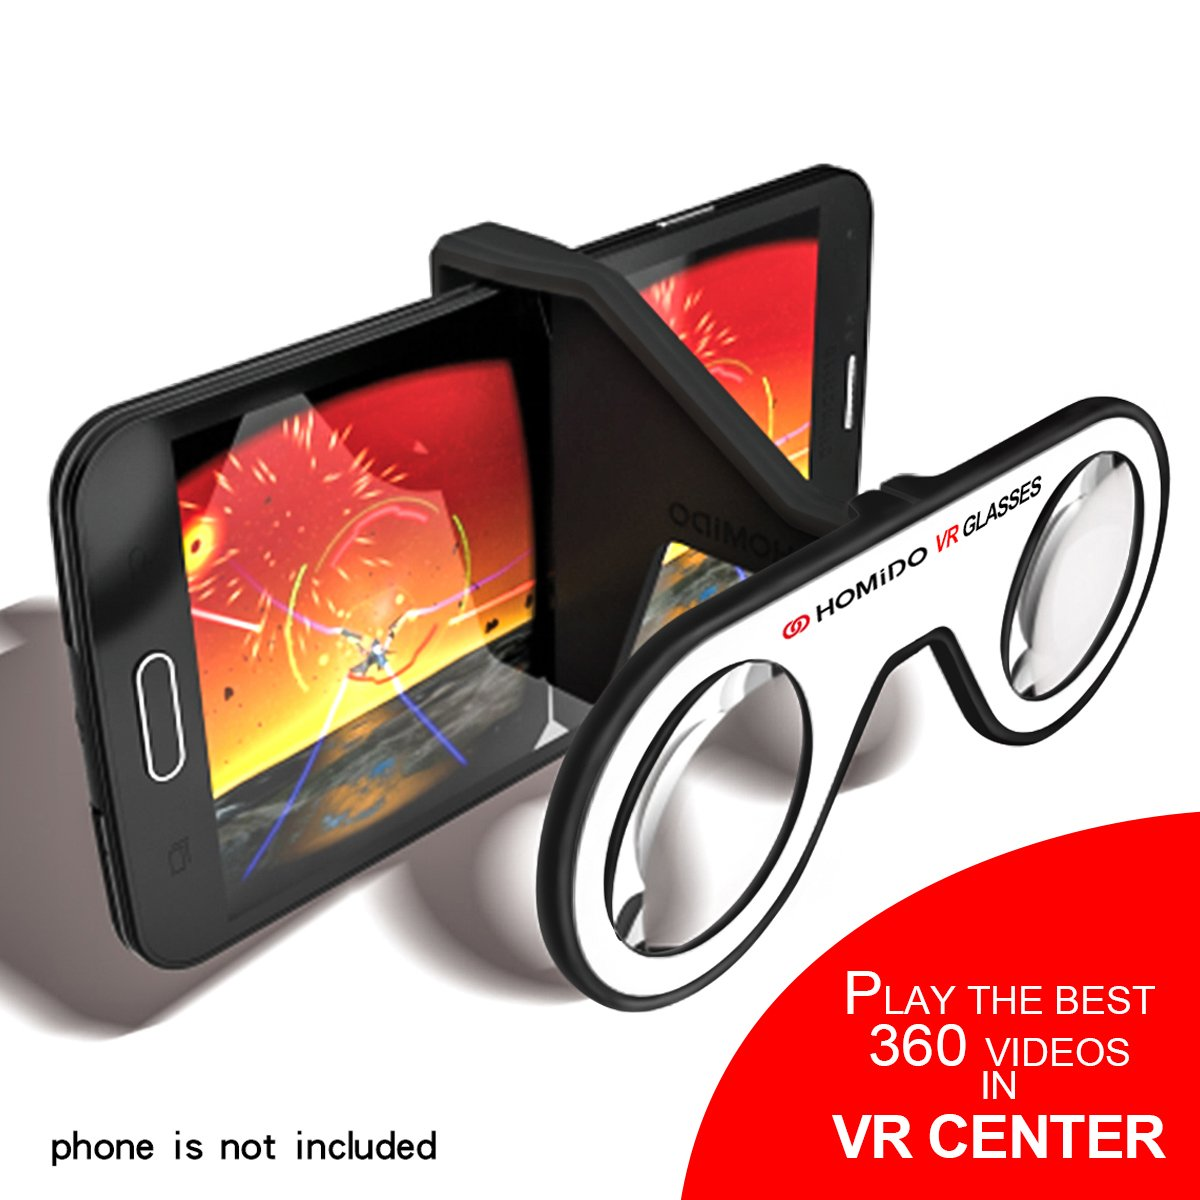 Homido Mini Virtual Reality Glasses for Smartphone Foldable VR Headset Compliant with iPhone & Android Cell Phone Vr Games and 3D Movies by Homido